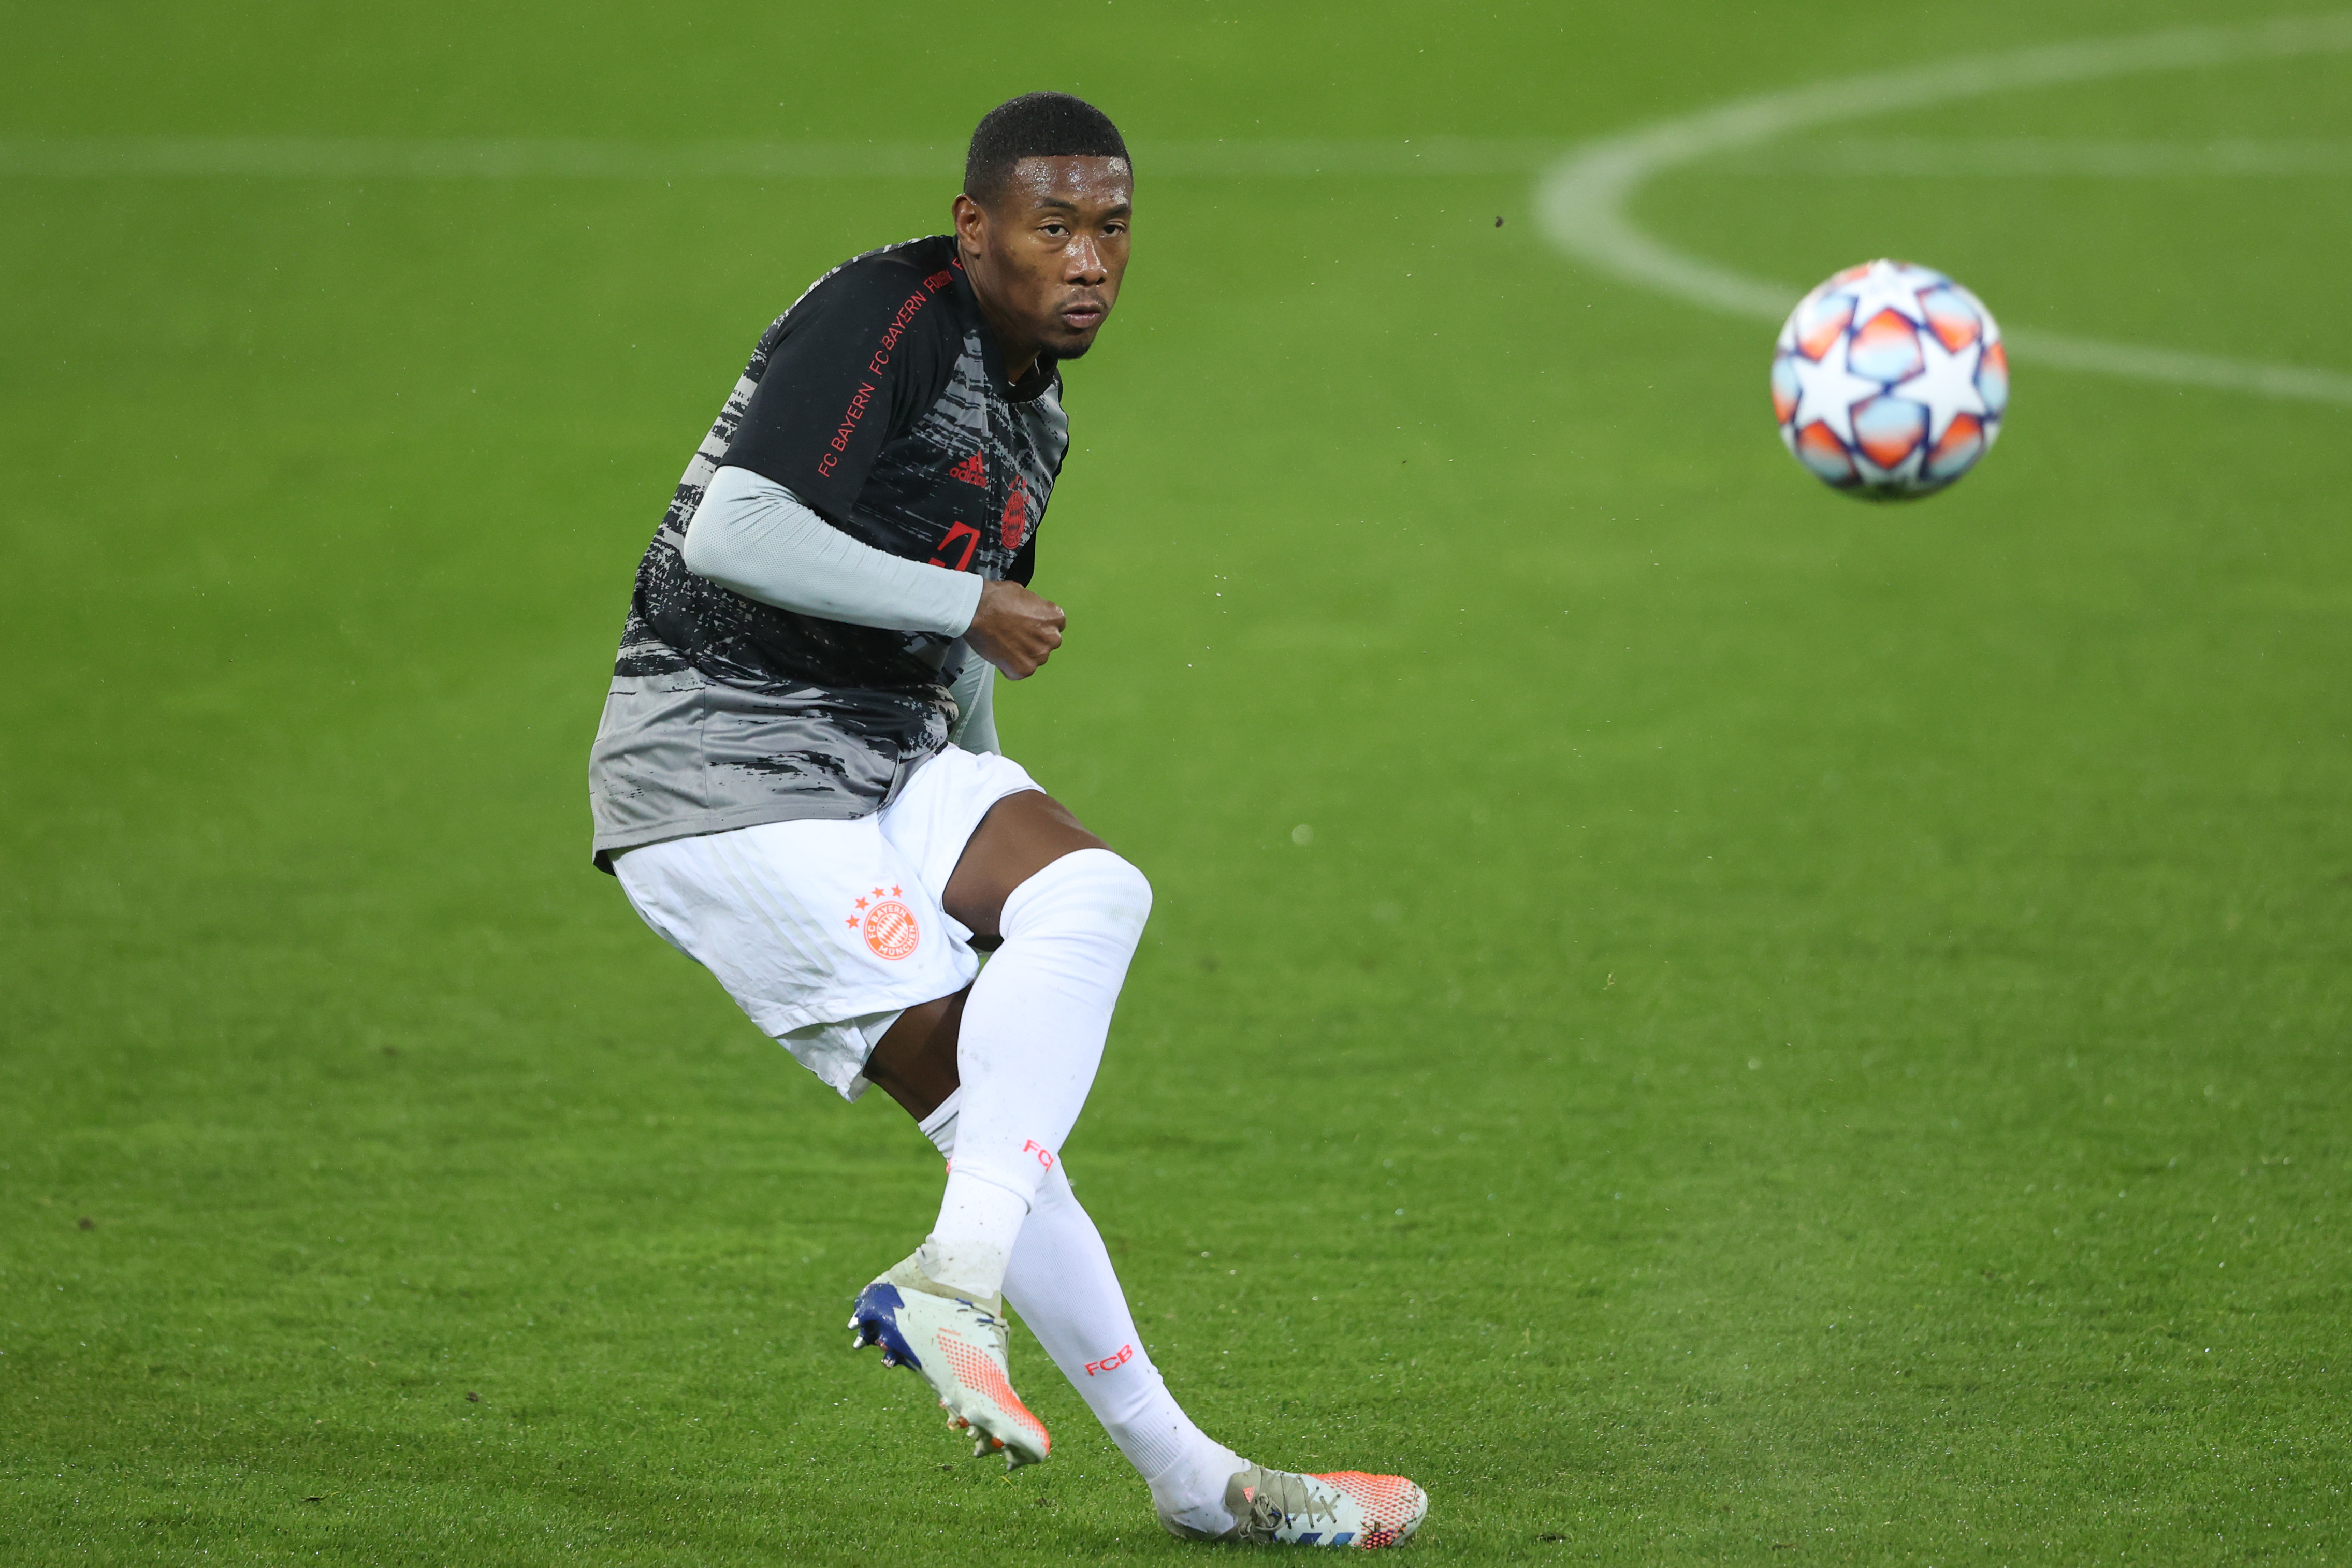 Liverpool locked in a three-way battle for Alaba who is in action in the photo